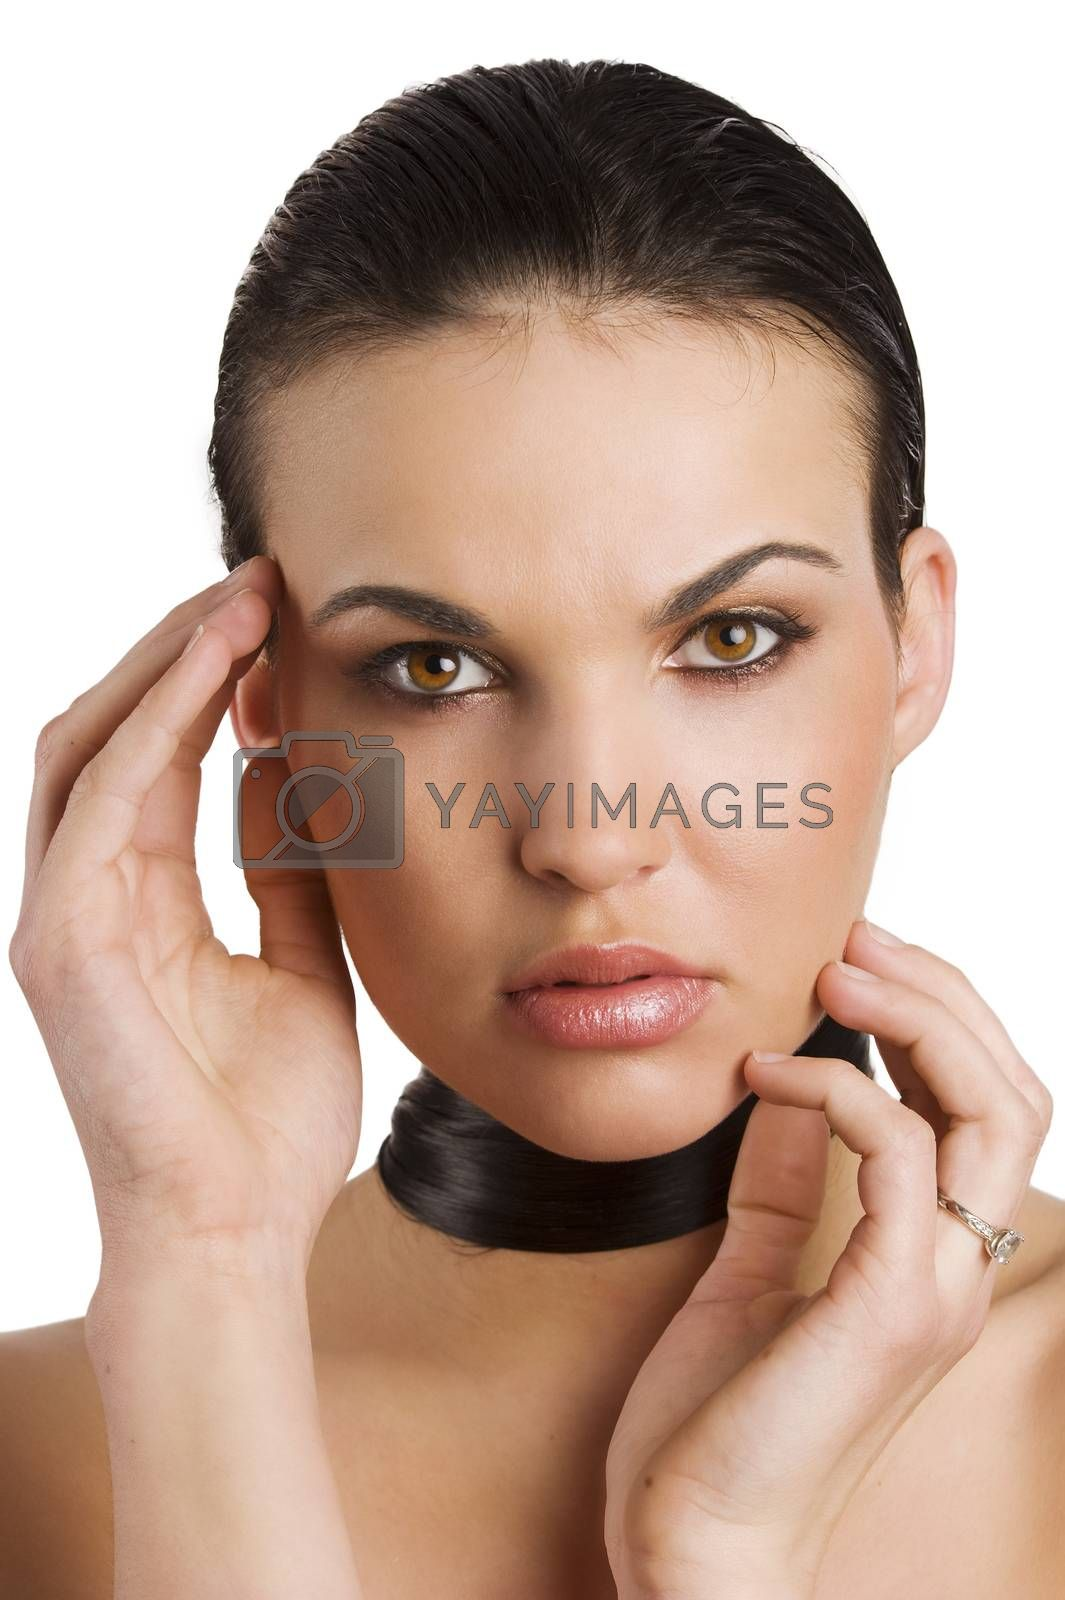 Royalty free image of model taking pose by fotoCD